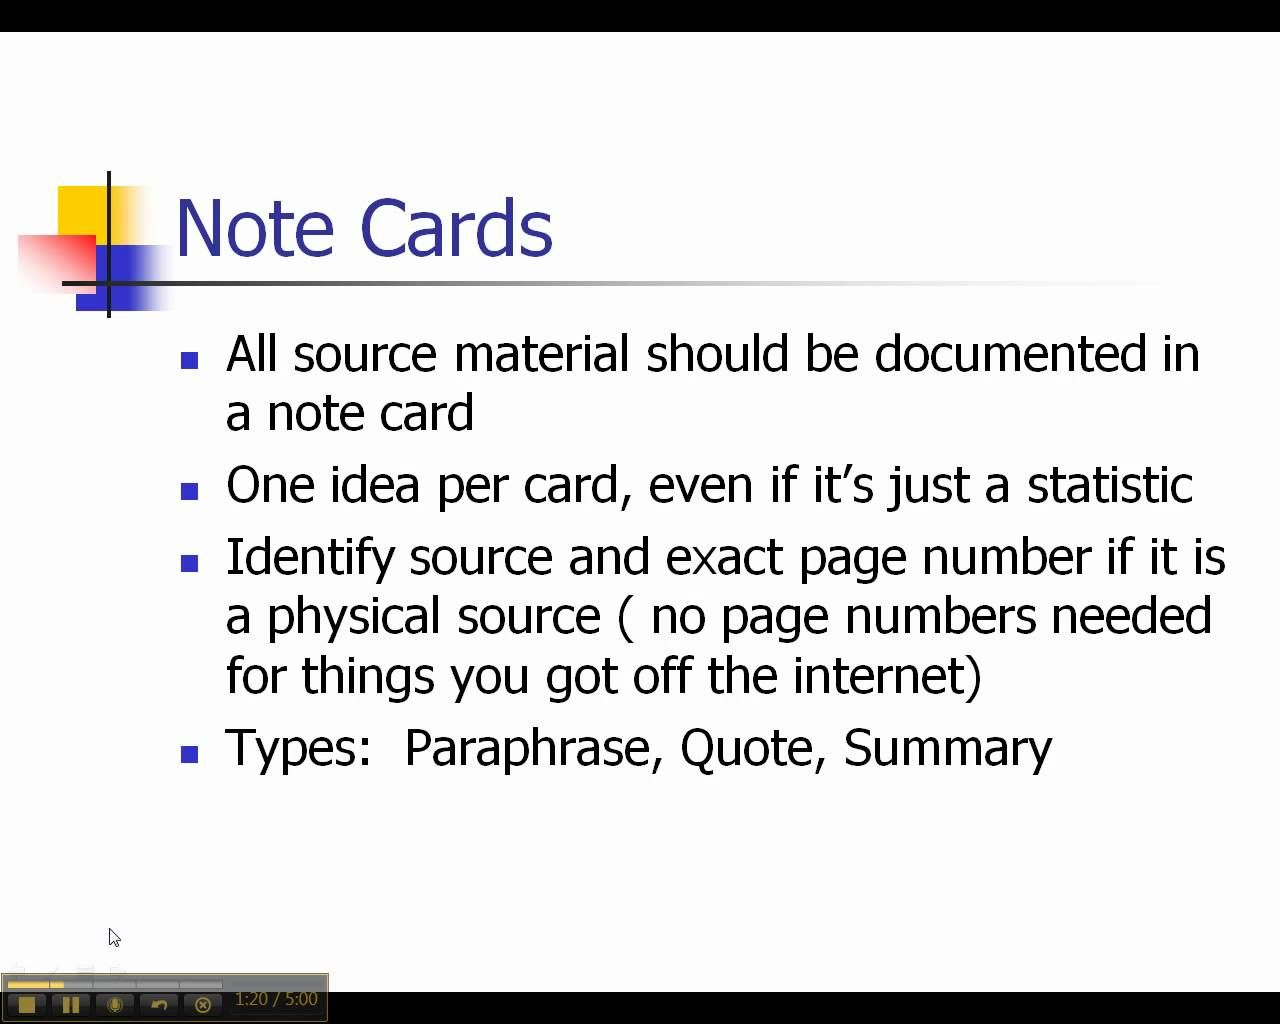 004 Research Paper Notecards For Impressive Papers Sample How To Write Mla Full